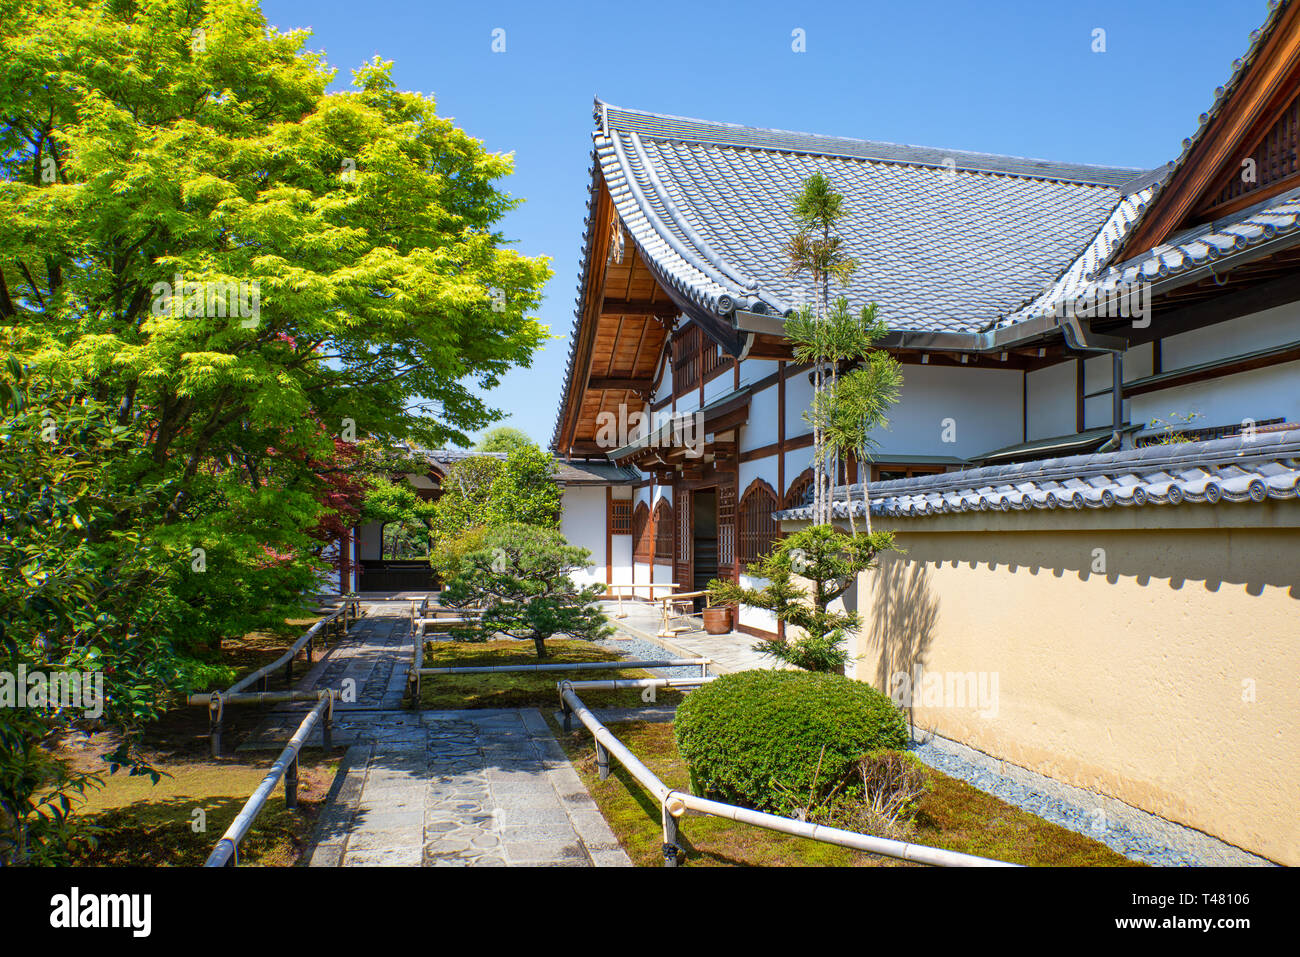 Japan, Kyoto, the entrance of the Korin-in temple - Stock Image